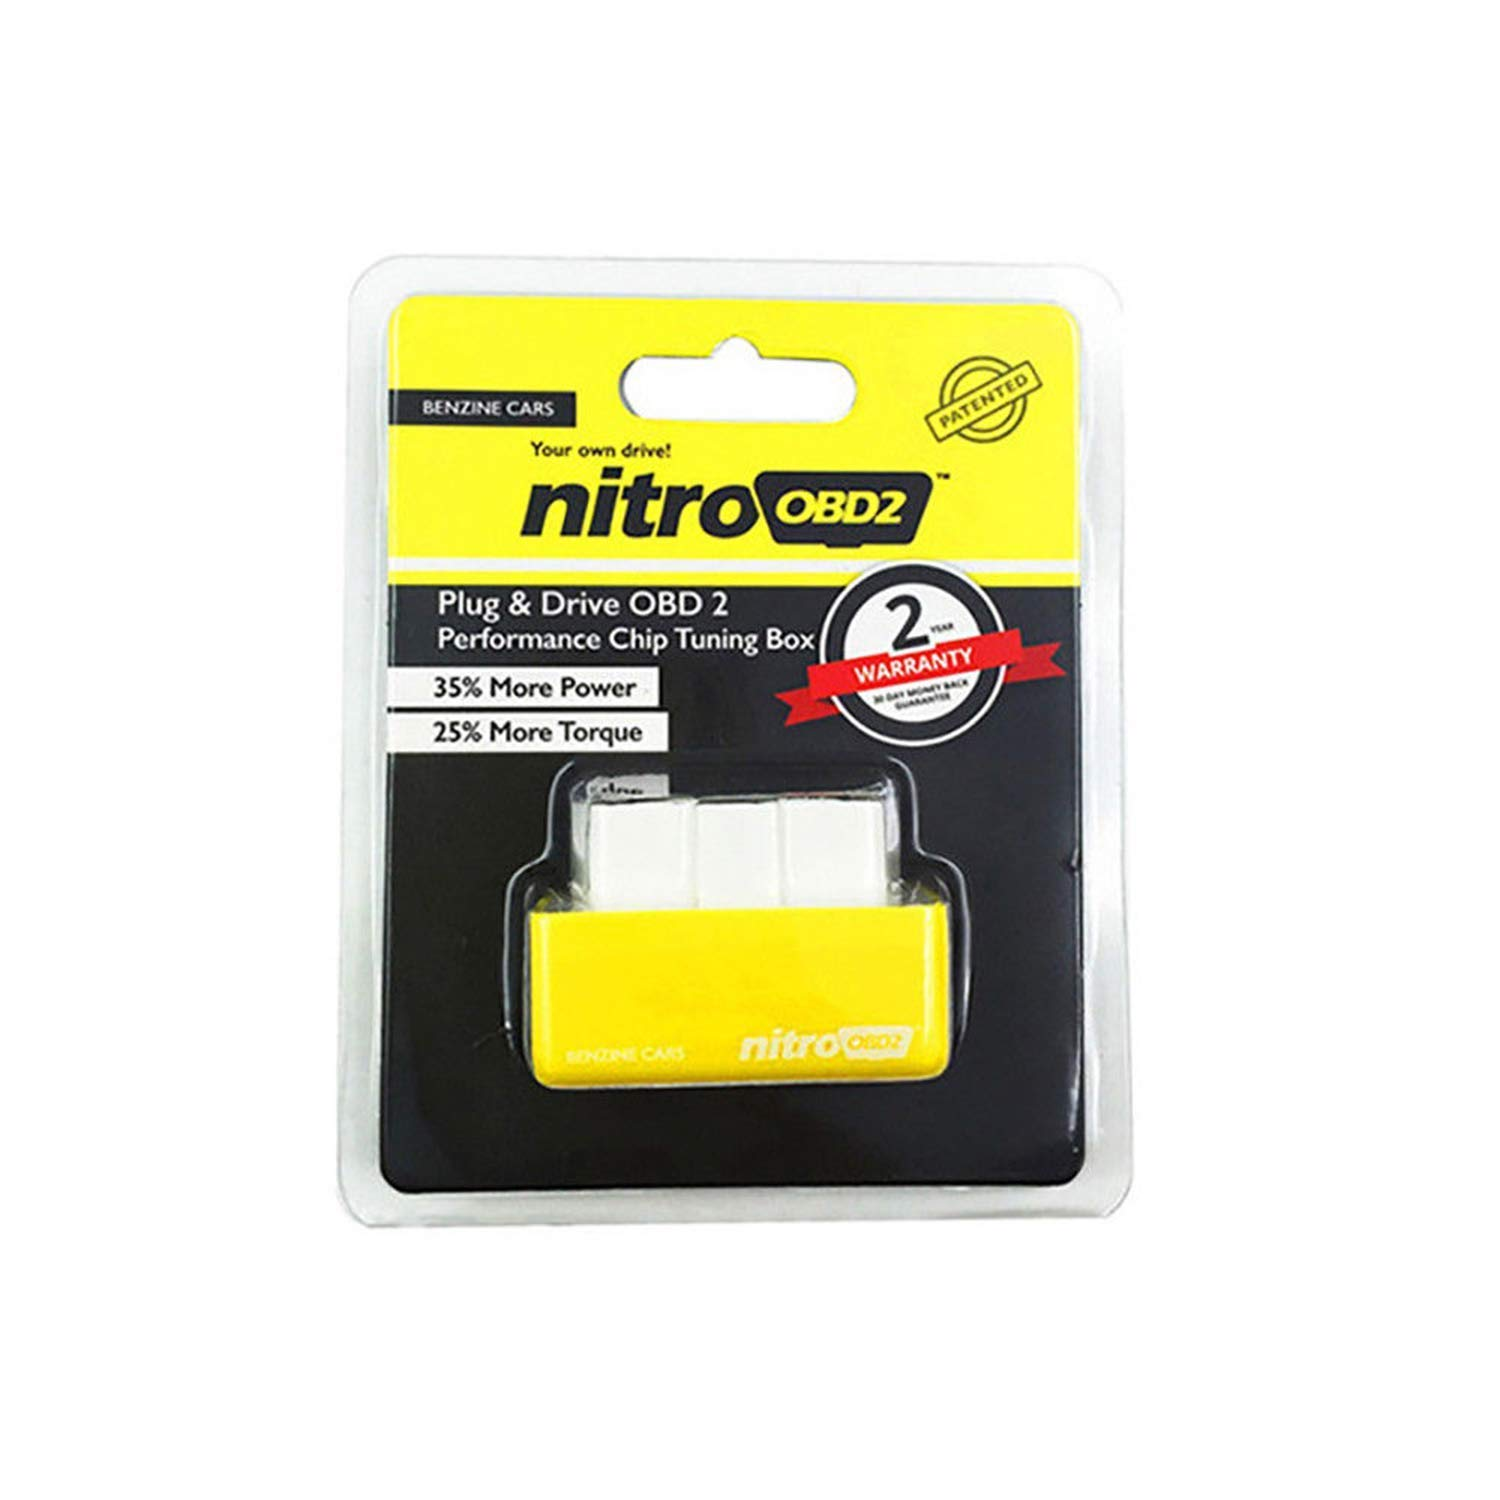 Bosmutus OBD2 Diesel Regulator Nitro OBD2 Chip Tuning Box Eco OBD2 More Power and More Torque//Plug and Play Nitro OBD2 Performance Tuning Box//For Diesel Cars General Purpose Model 1996 NitroOBD2